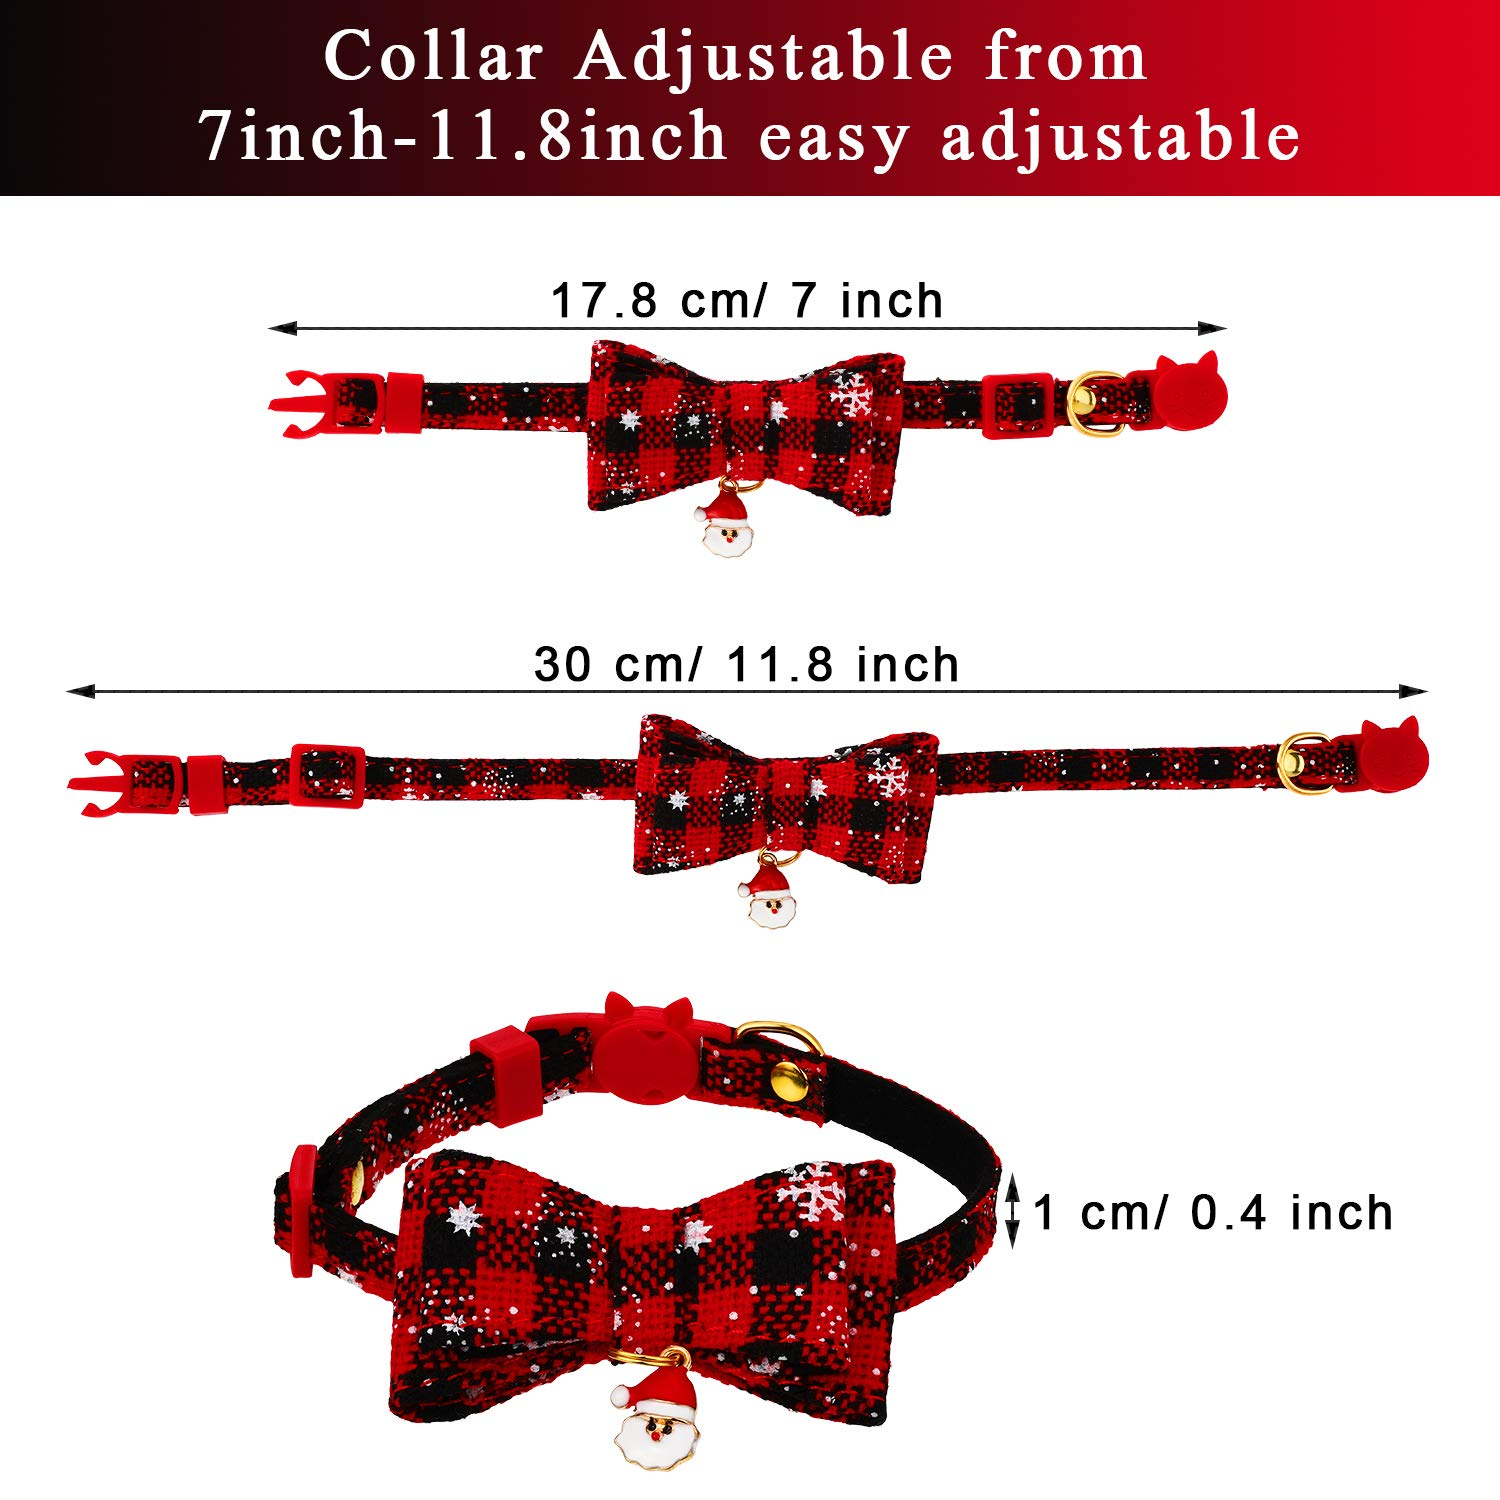 Frienda 4 Pieces Christmas Cat Collars Adjustable Breakaway Cat Collars with 4 Pieces Christmas Pendants and 2 Pieces Cat Toy Plush Balls for Christmas Party Cat Grooming Costume Accessories